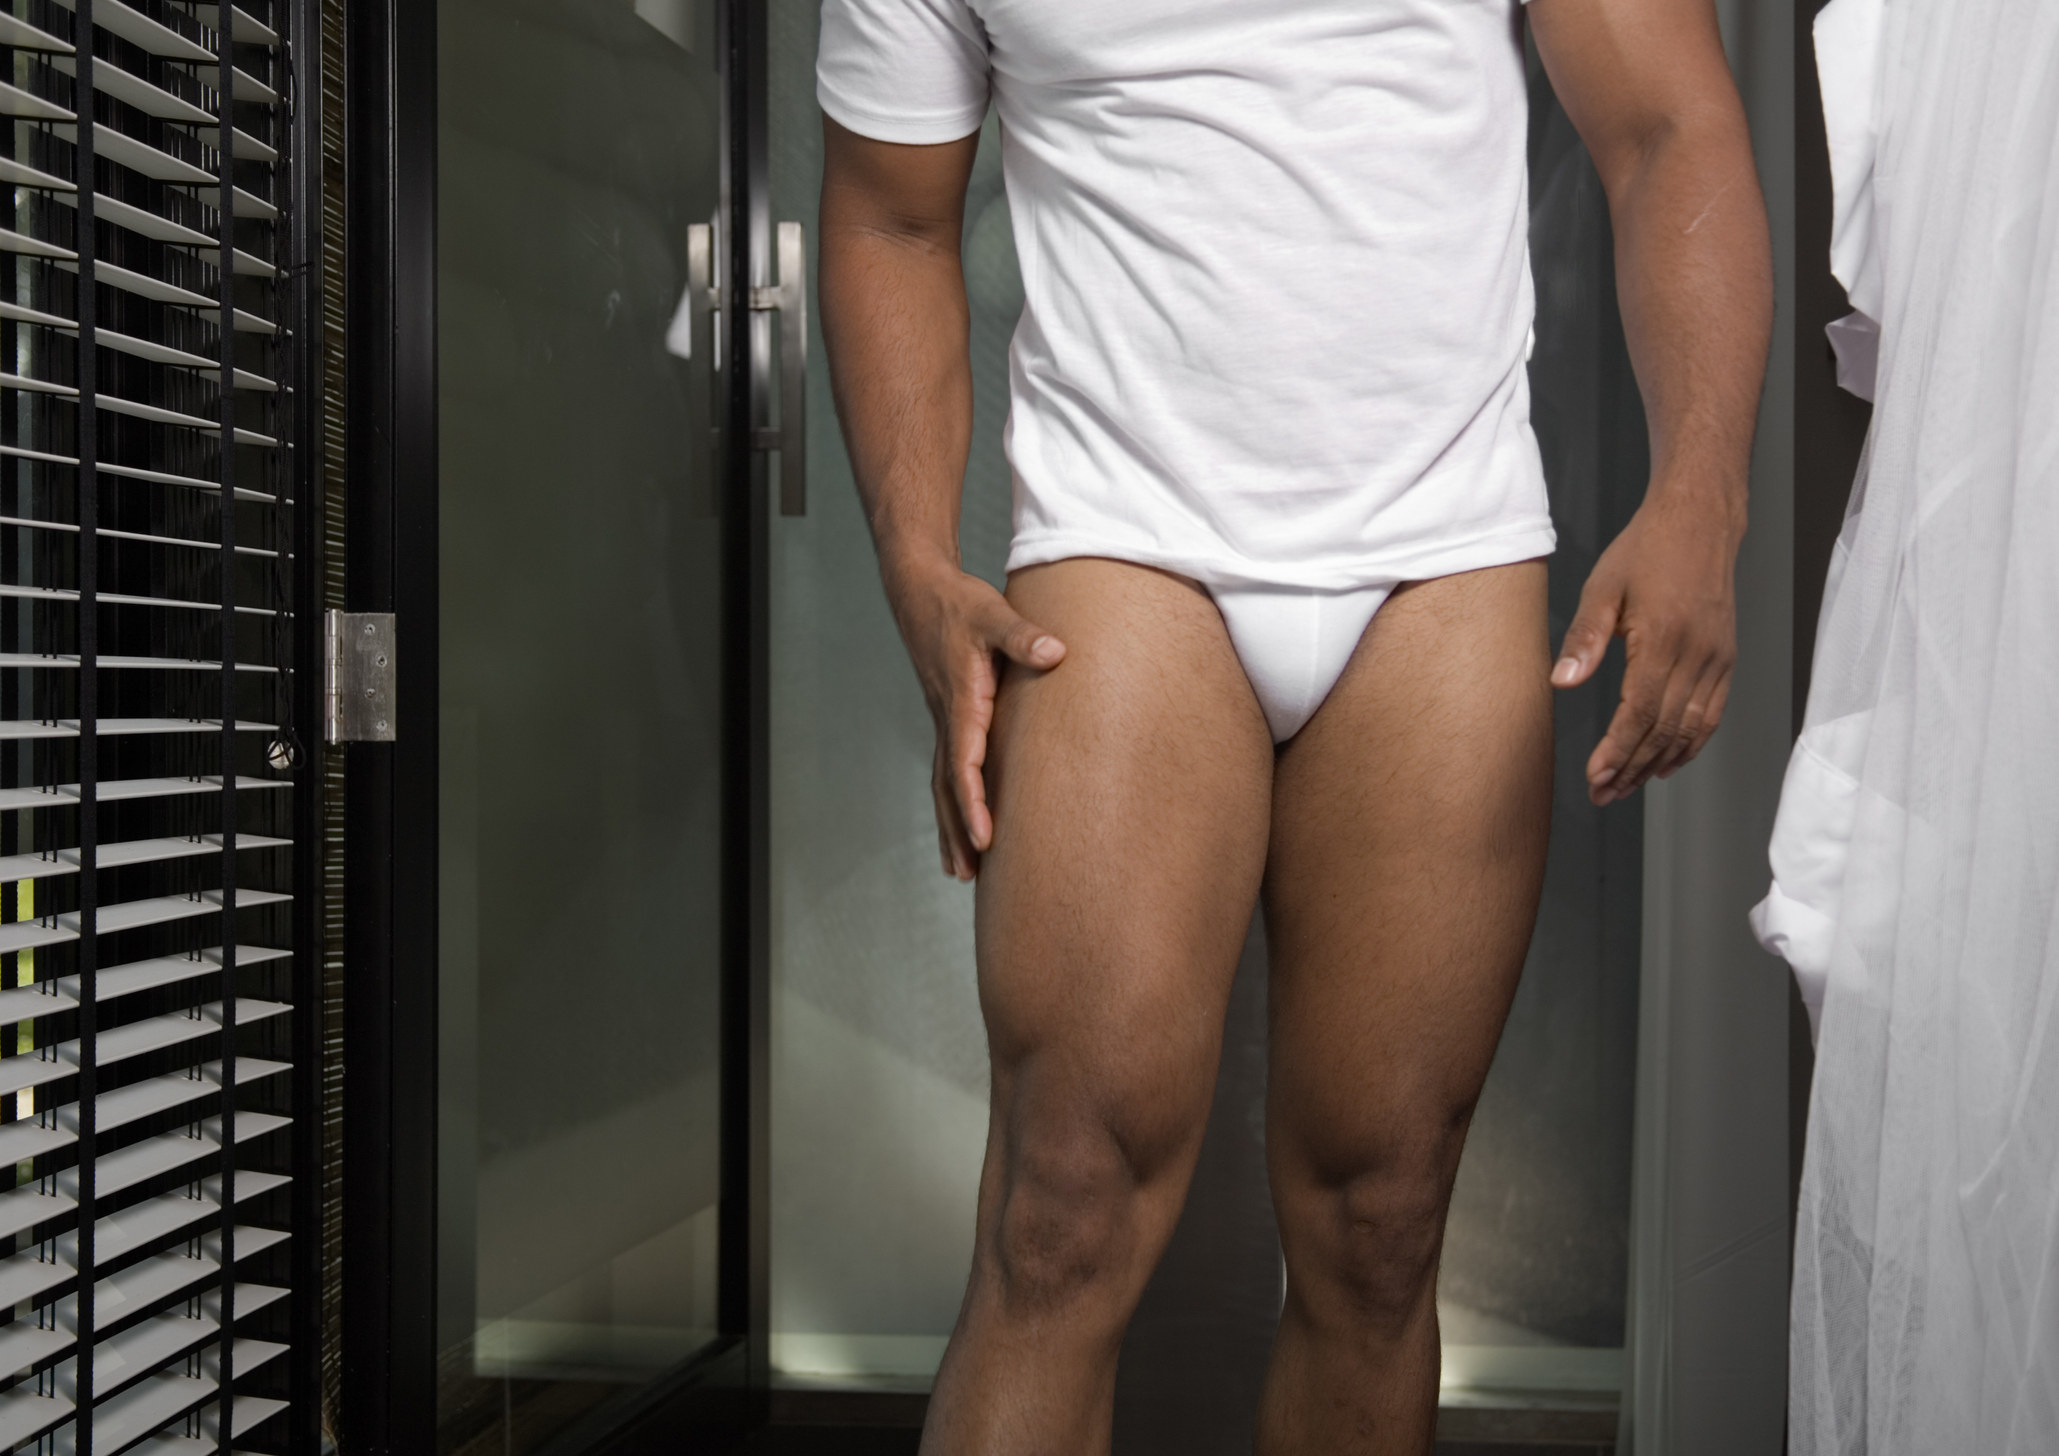 A young man seen from chest to knee walks out of the bathroom toward camera. He is wearing a white tee and briefs